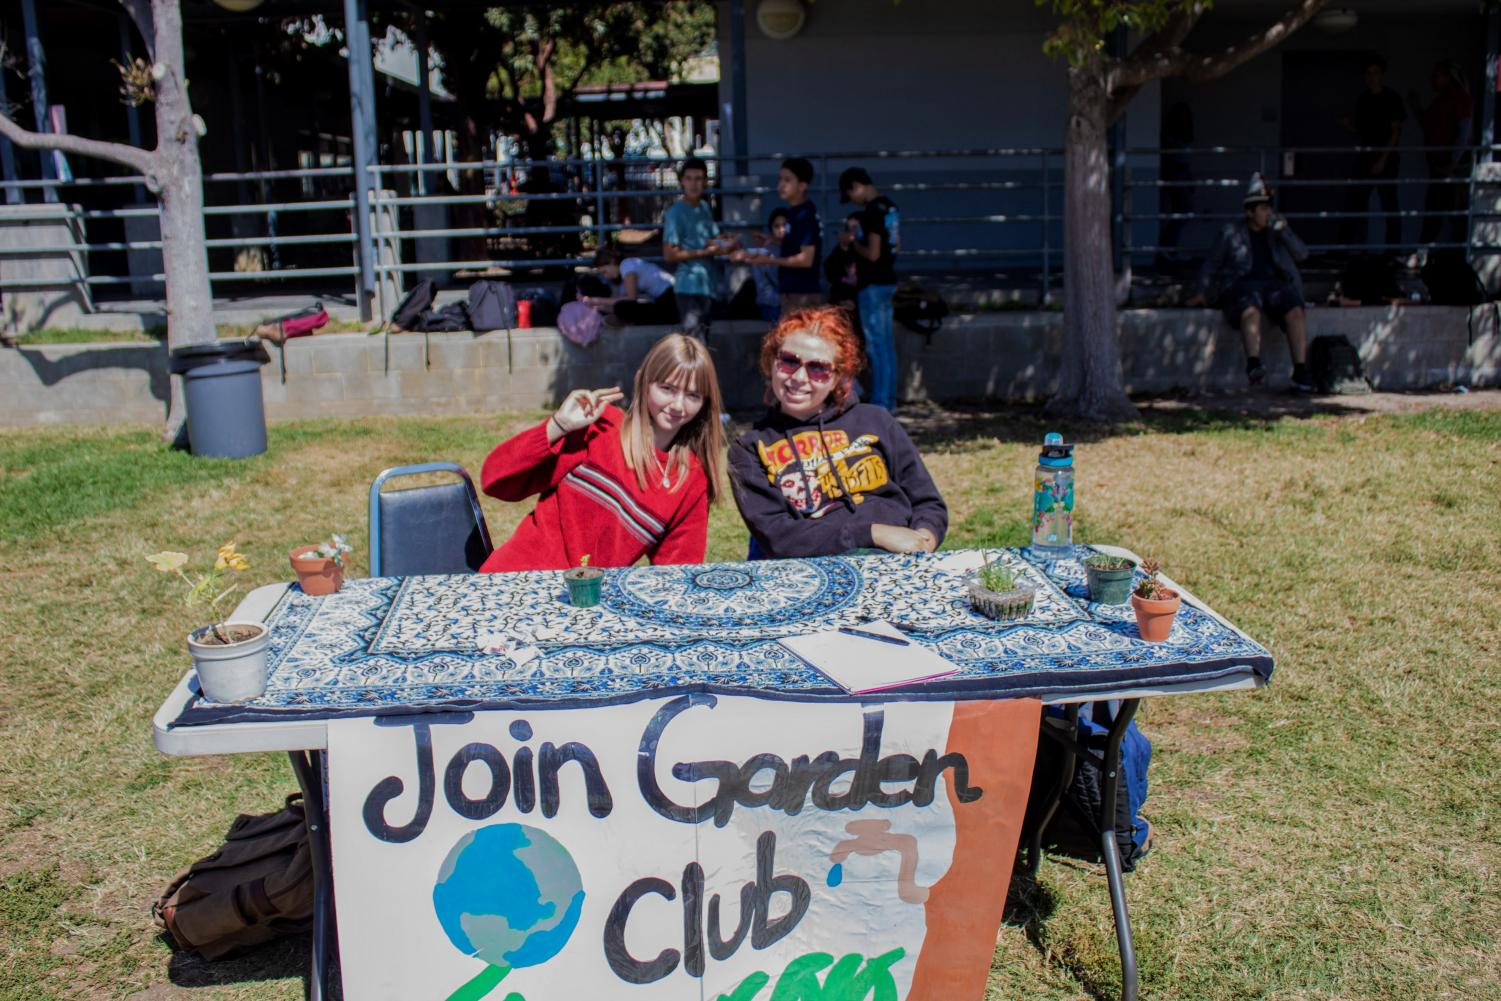 Garden club, one of the various interest groups offered at Foothill.